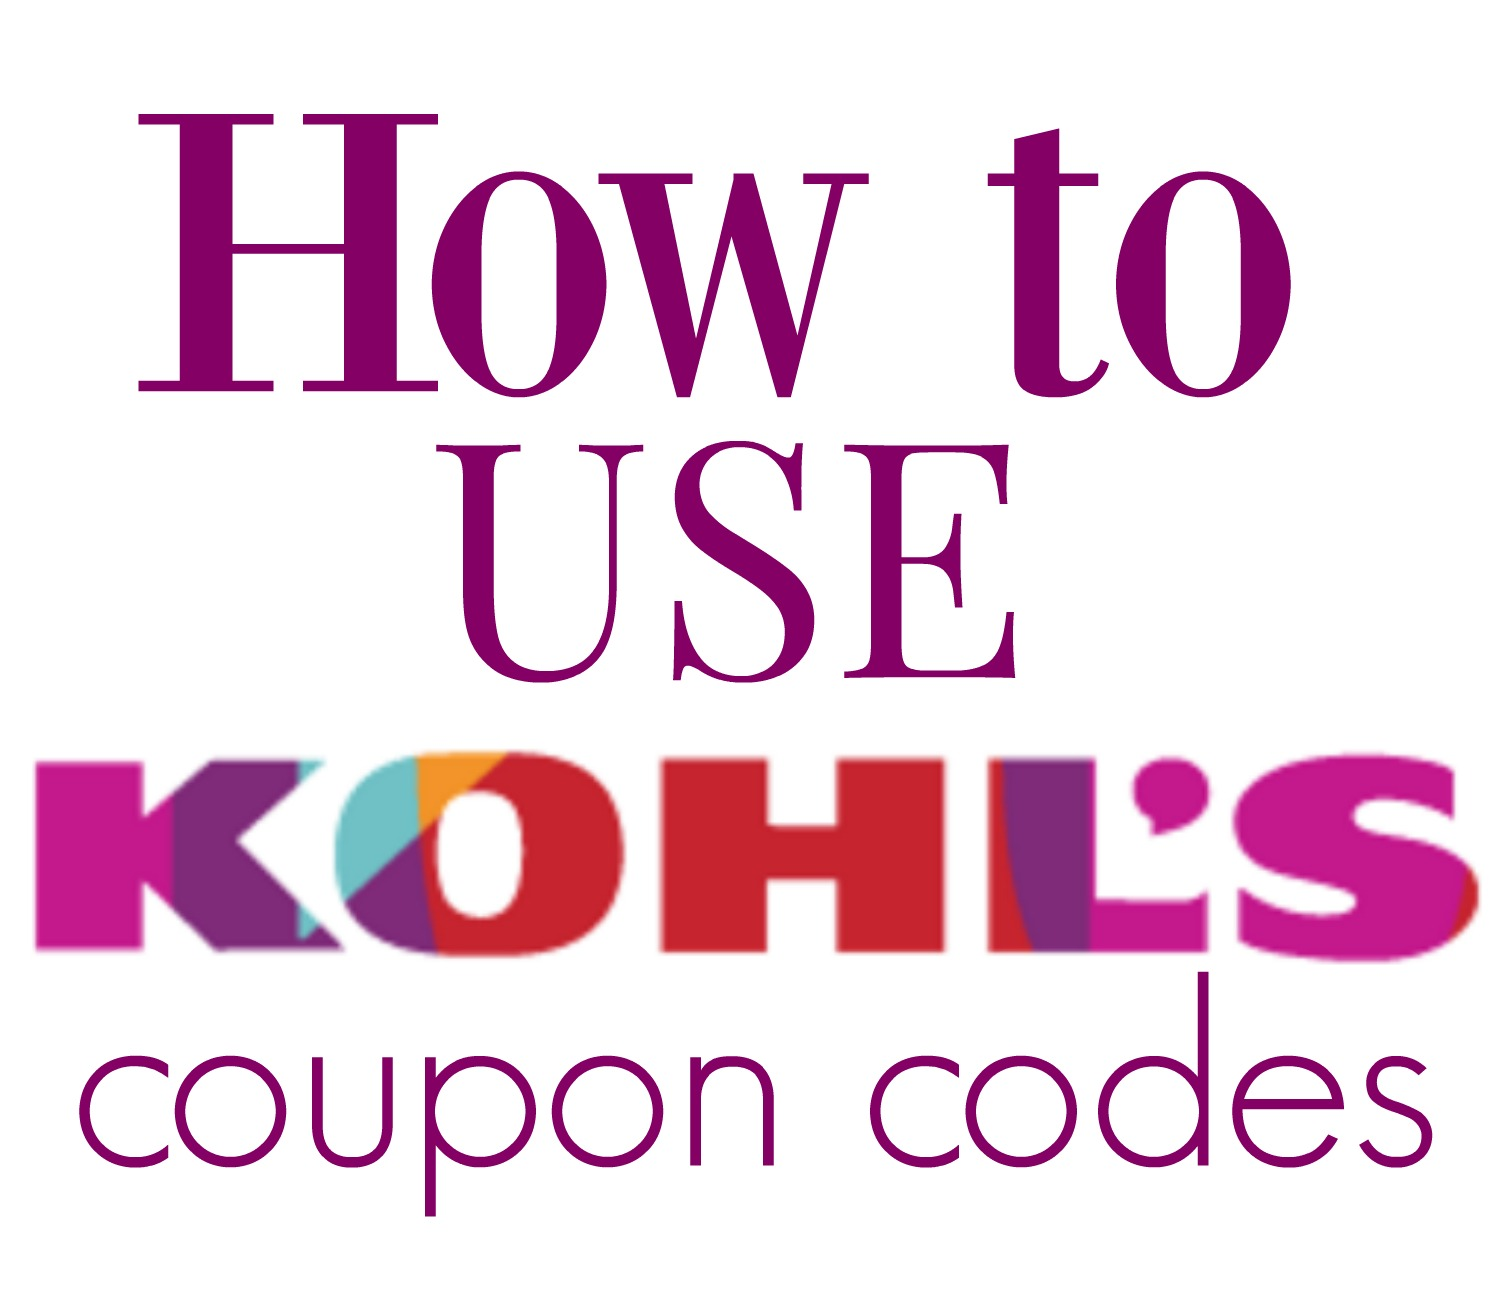 Current Kohl's Coupon Codes & Kohl's Coupon Code Rules